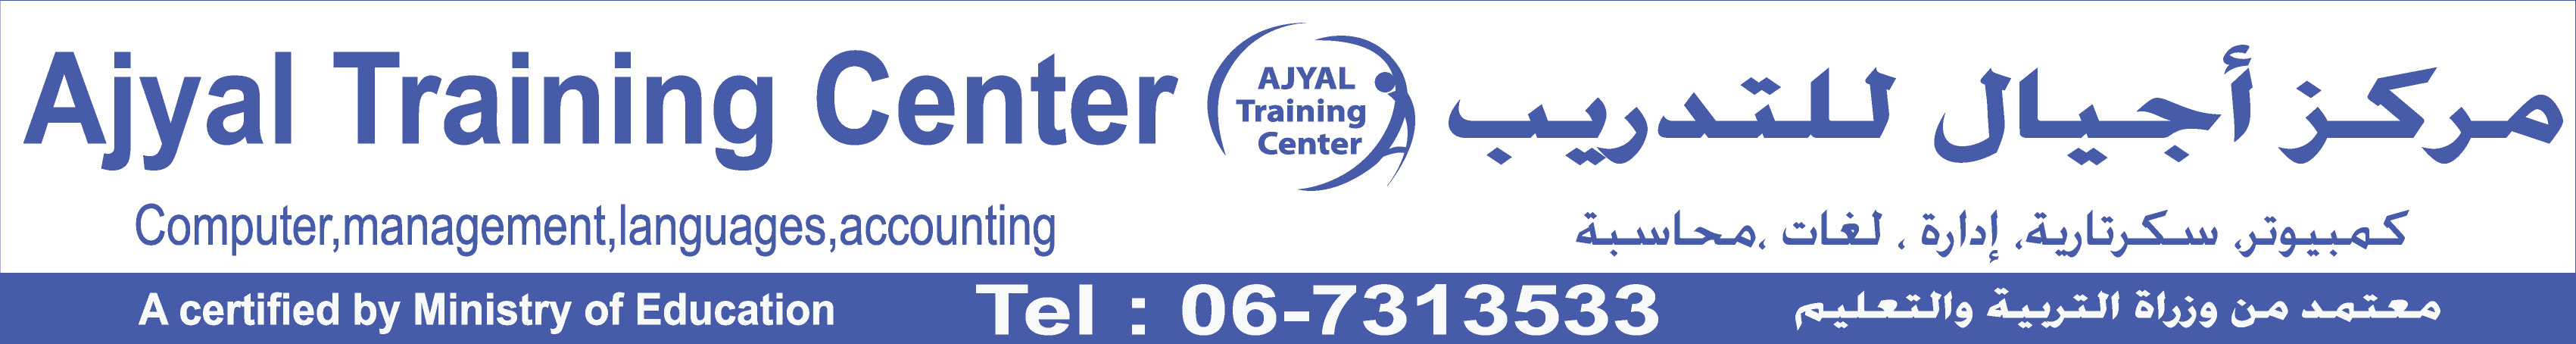 ajyal training center